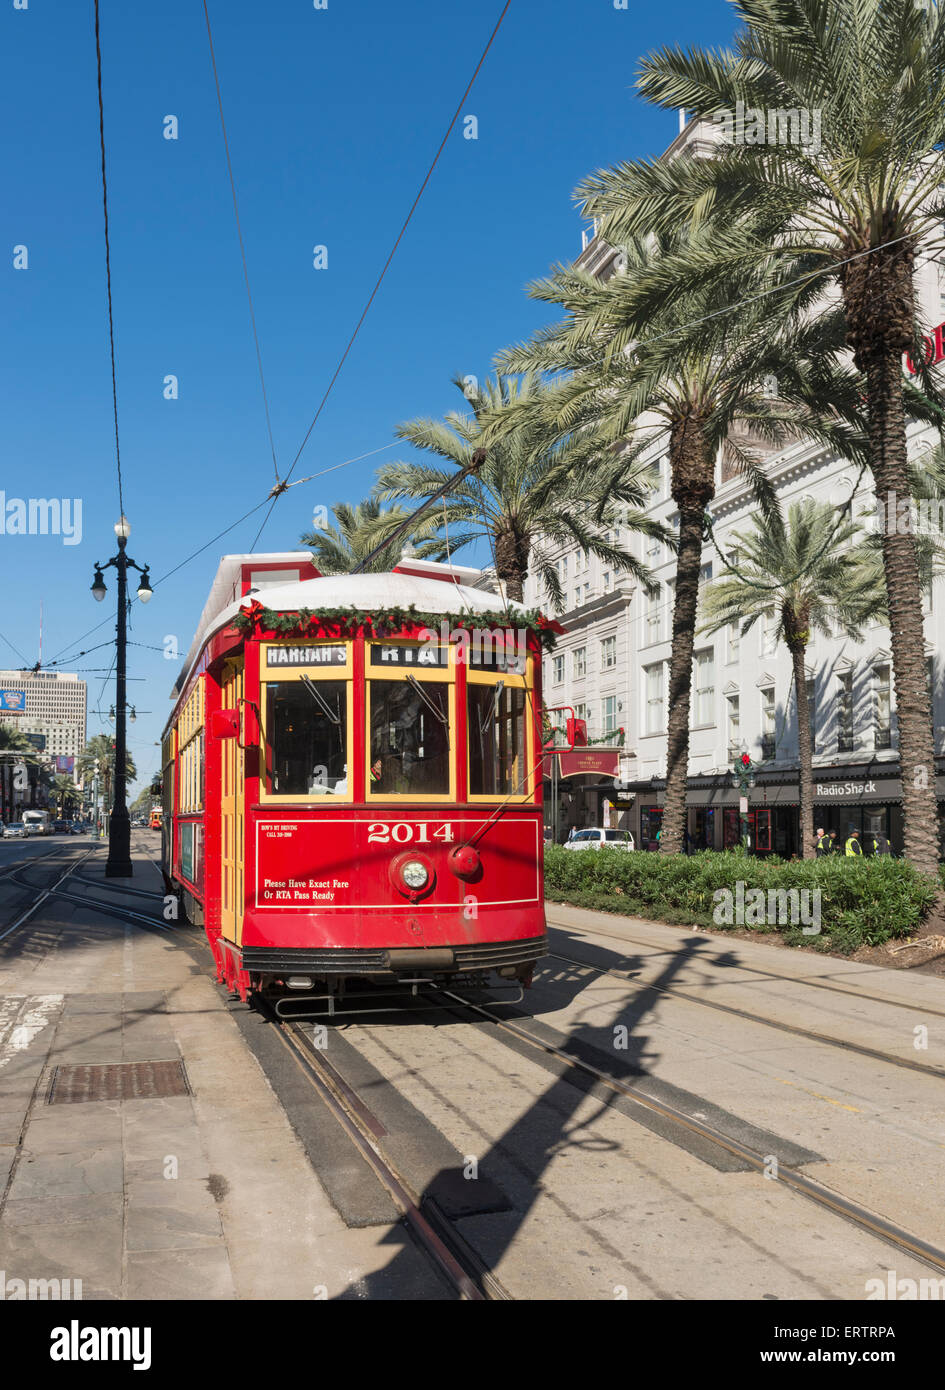 Streetcar on Canal Street, New Orleans French Quarter, Louisiana, USA - Stock Image